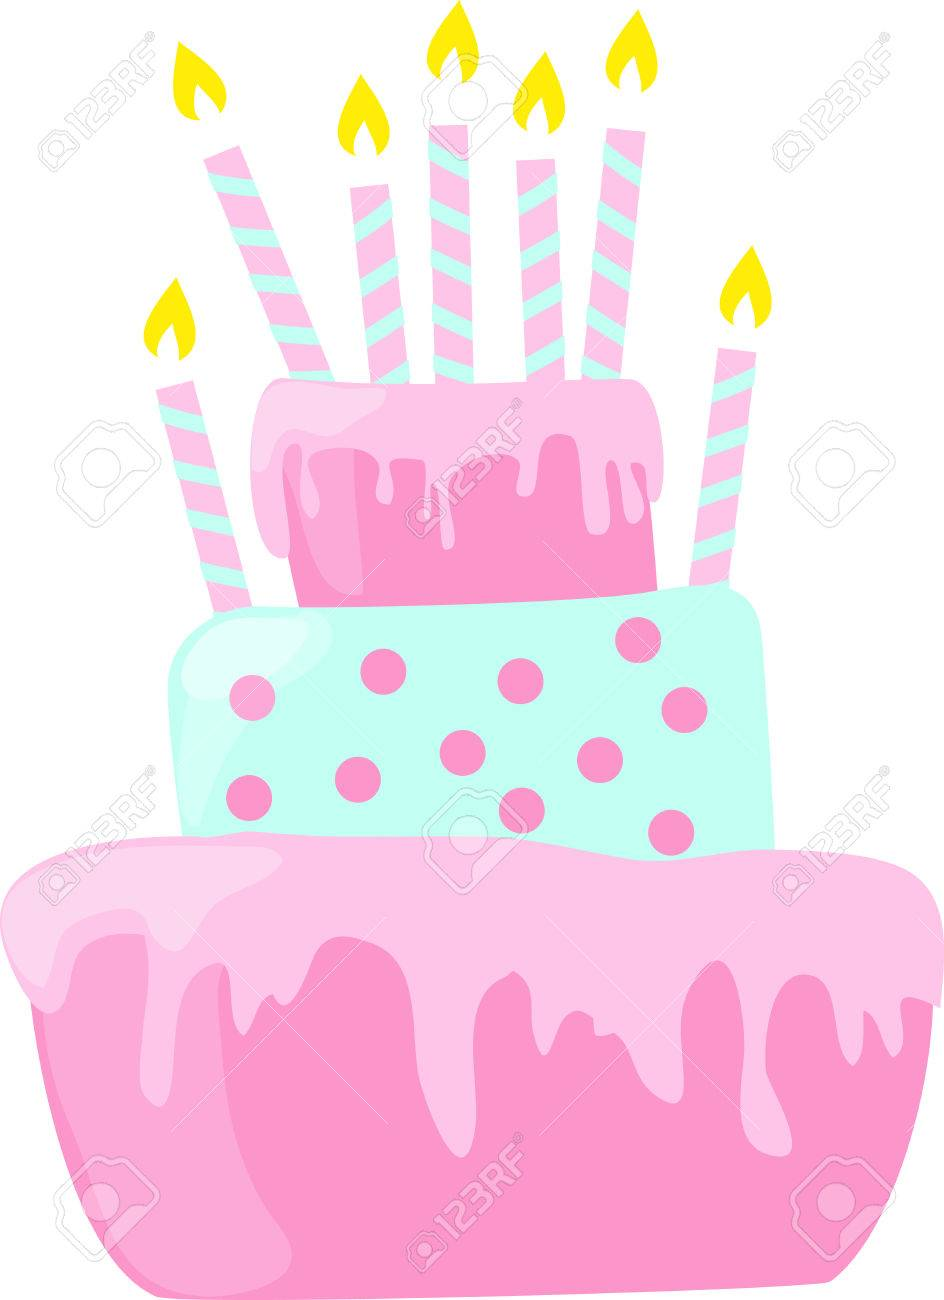 Pink anniversary cake with candles decorations in light pastel...